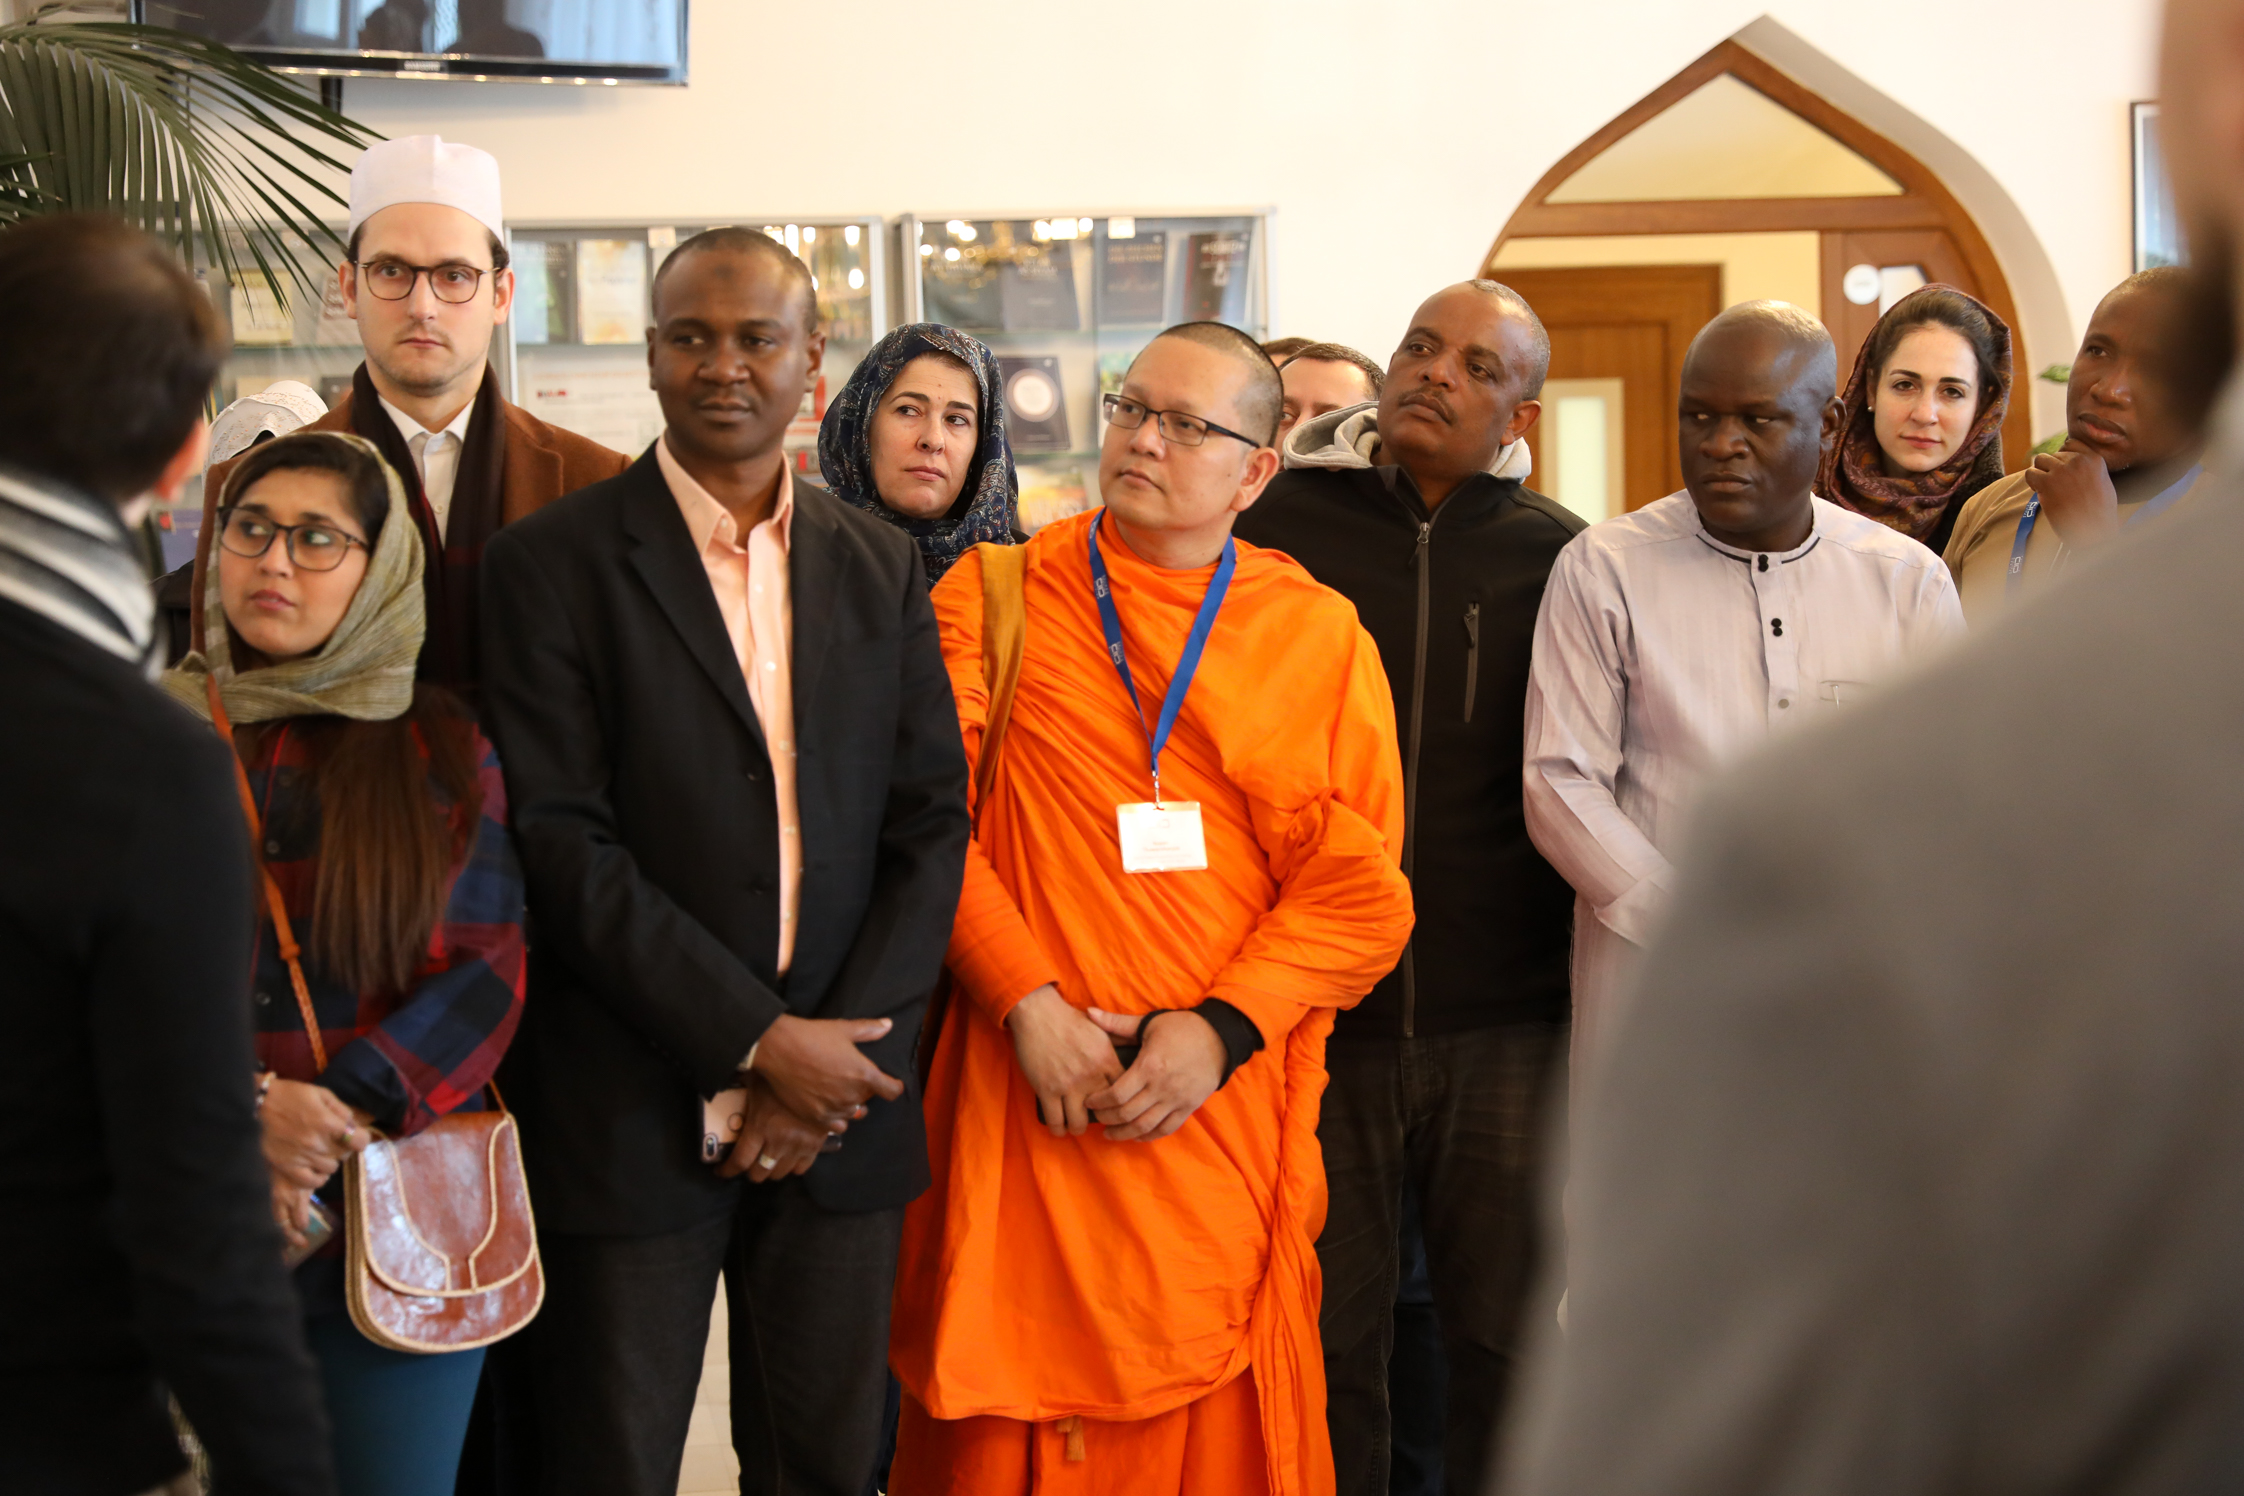 Dr. Auwal Farouk Abdussalam visiting houses of worship in Vienna as part of his activity in the KAICIID Fellows Programme (2018)